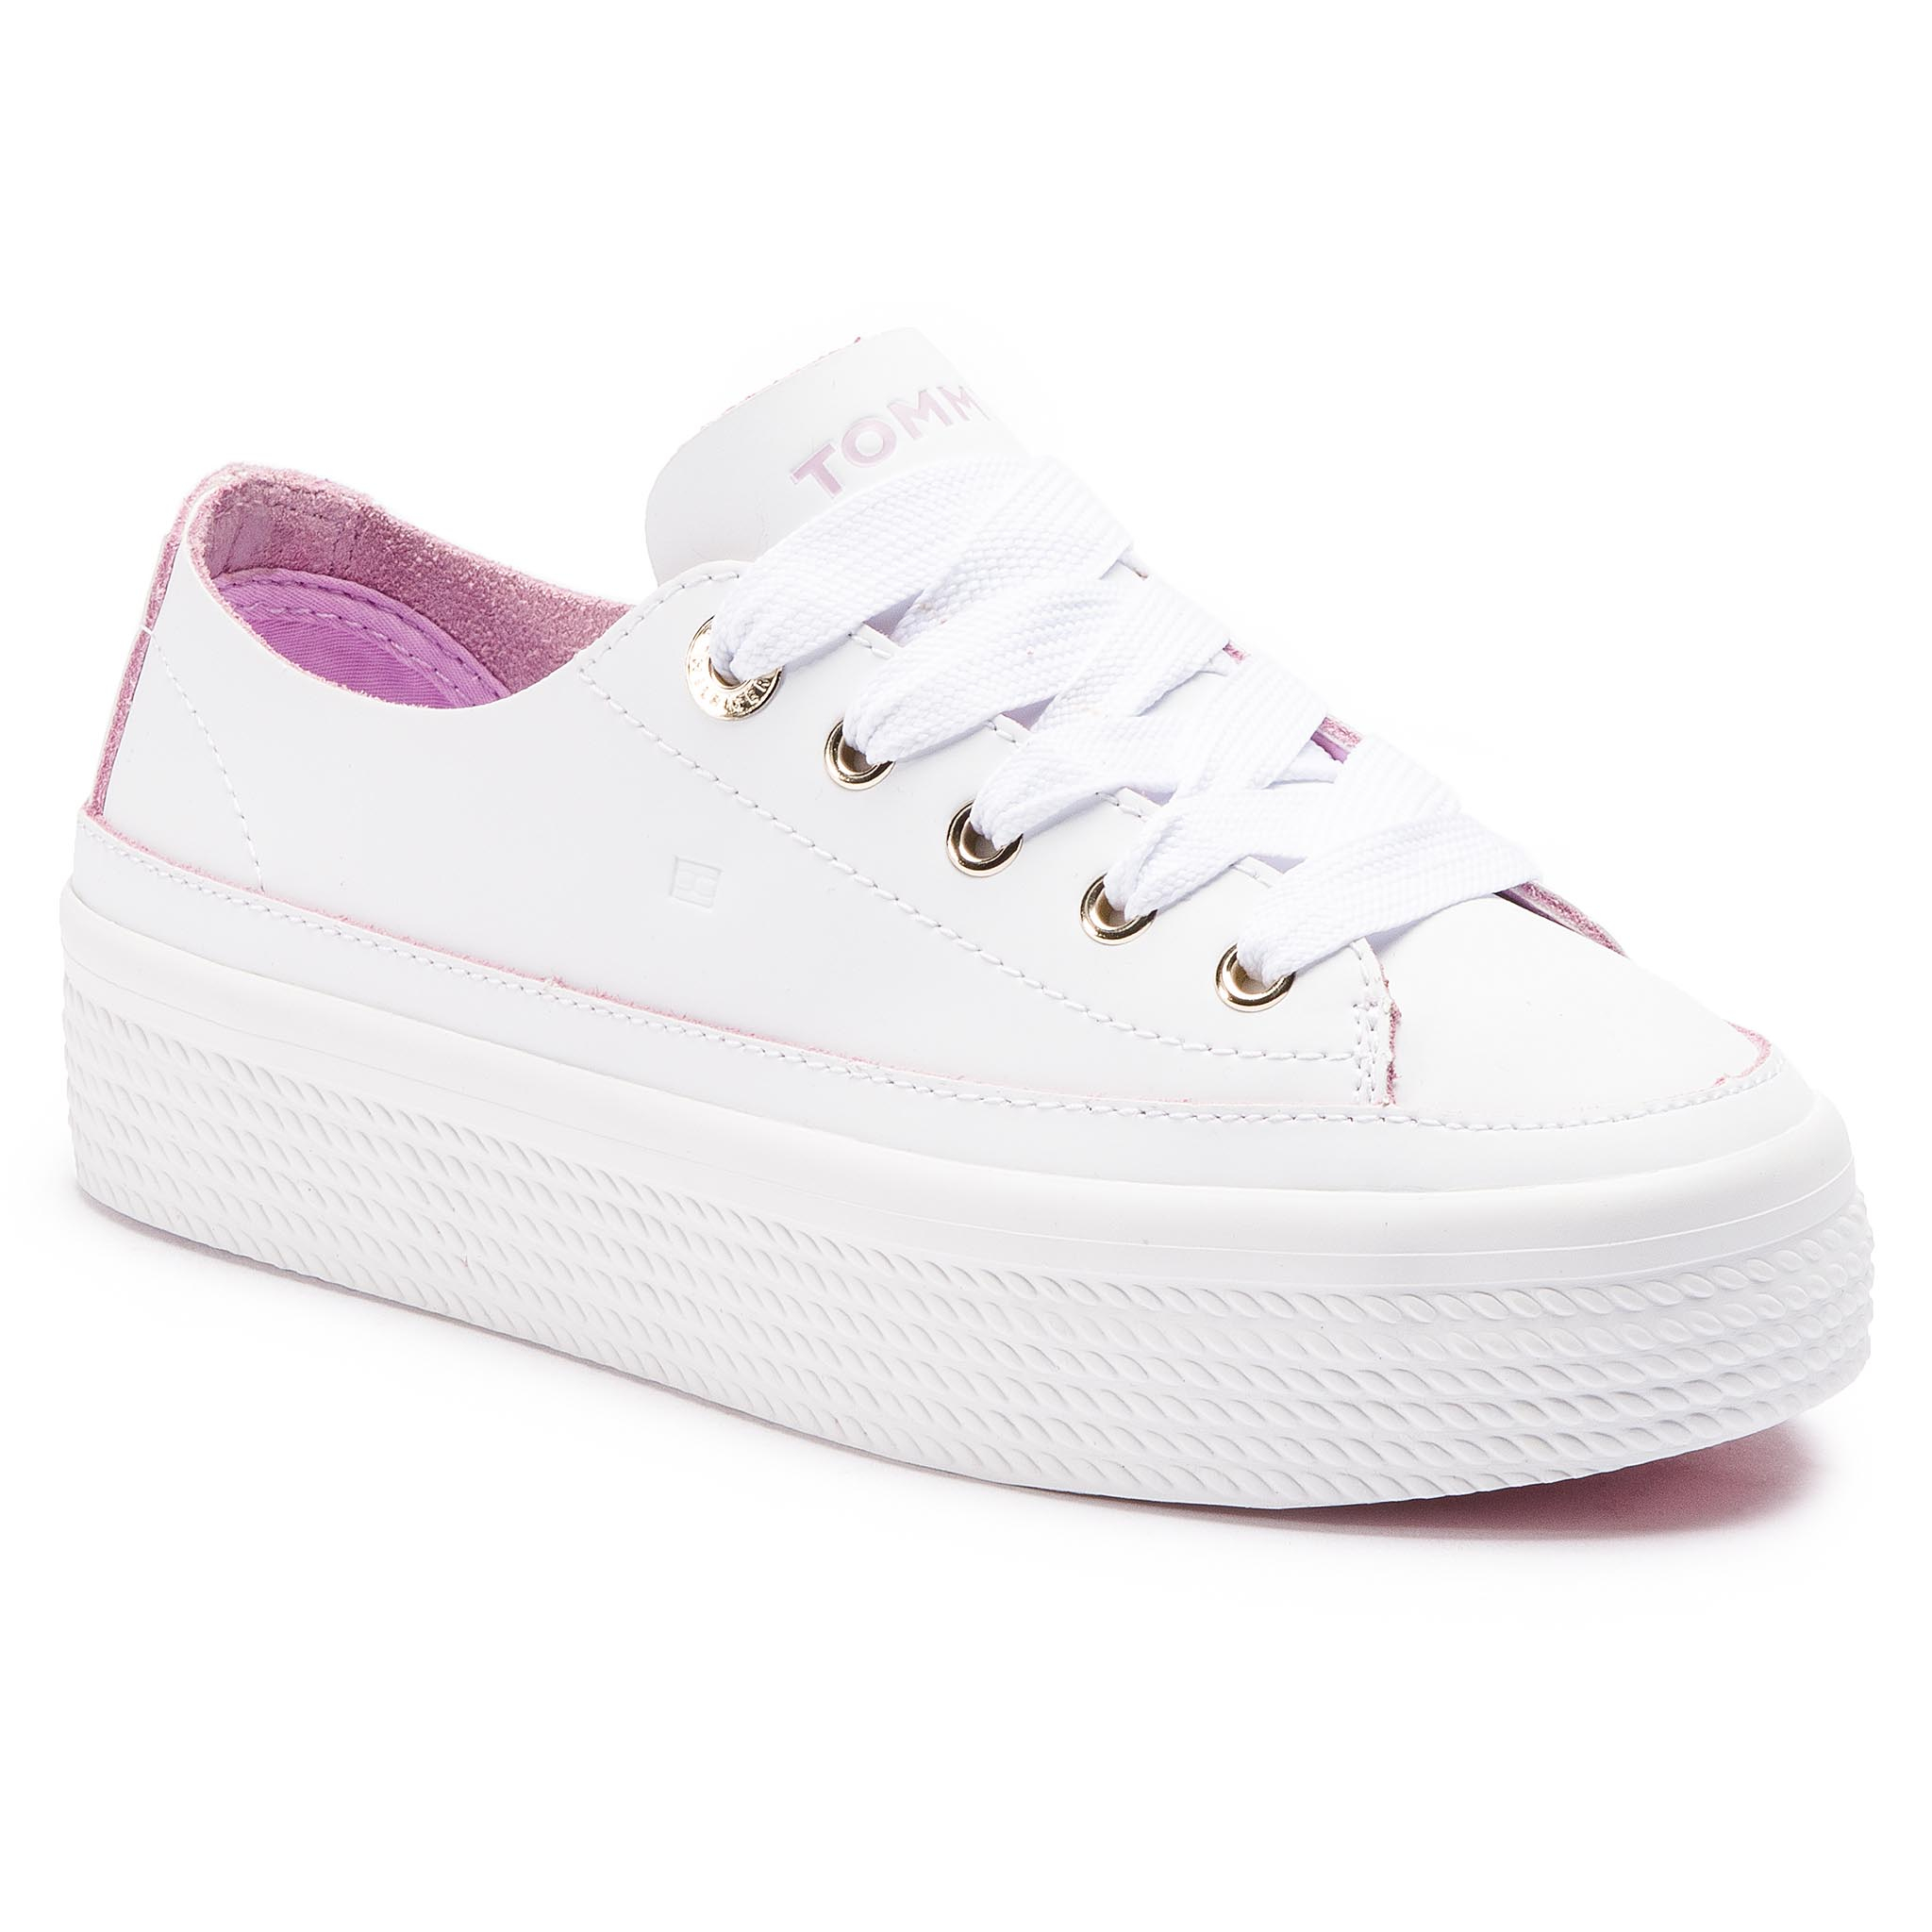 Sneakers TOMMY HILFIGER - Leather Flatform Sneaker FW0FW04089 White 100